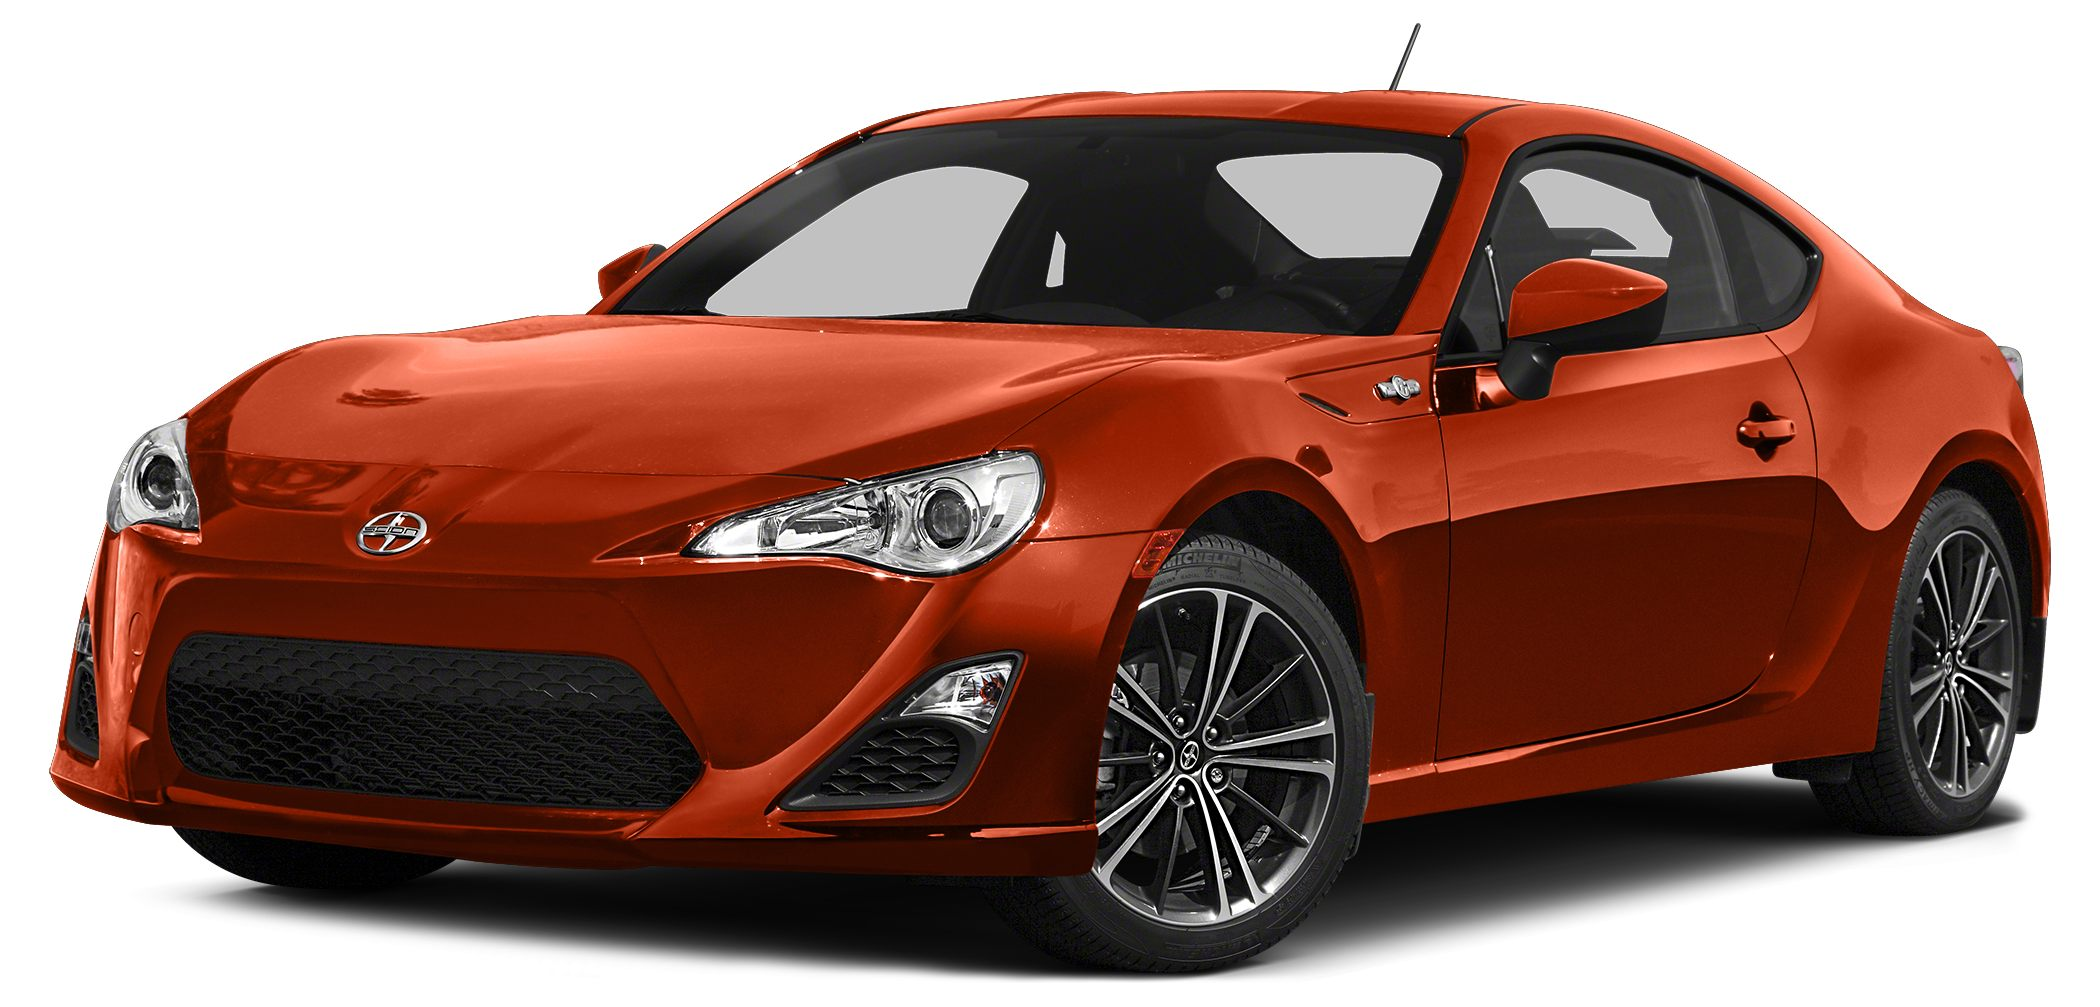 2015 Scion FR-S Base Scion has outdone itself with this sporty Coupe Wont last long Gassss sav